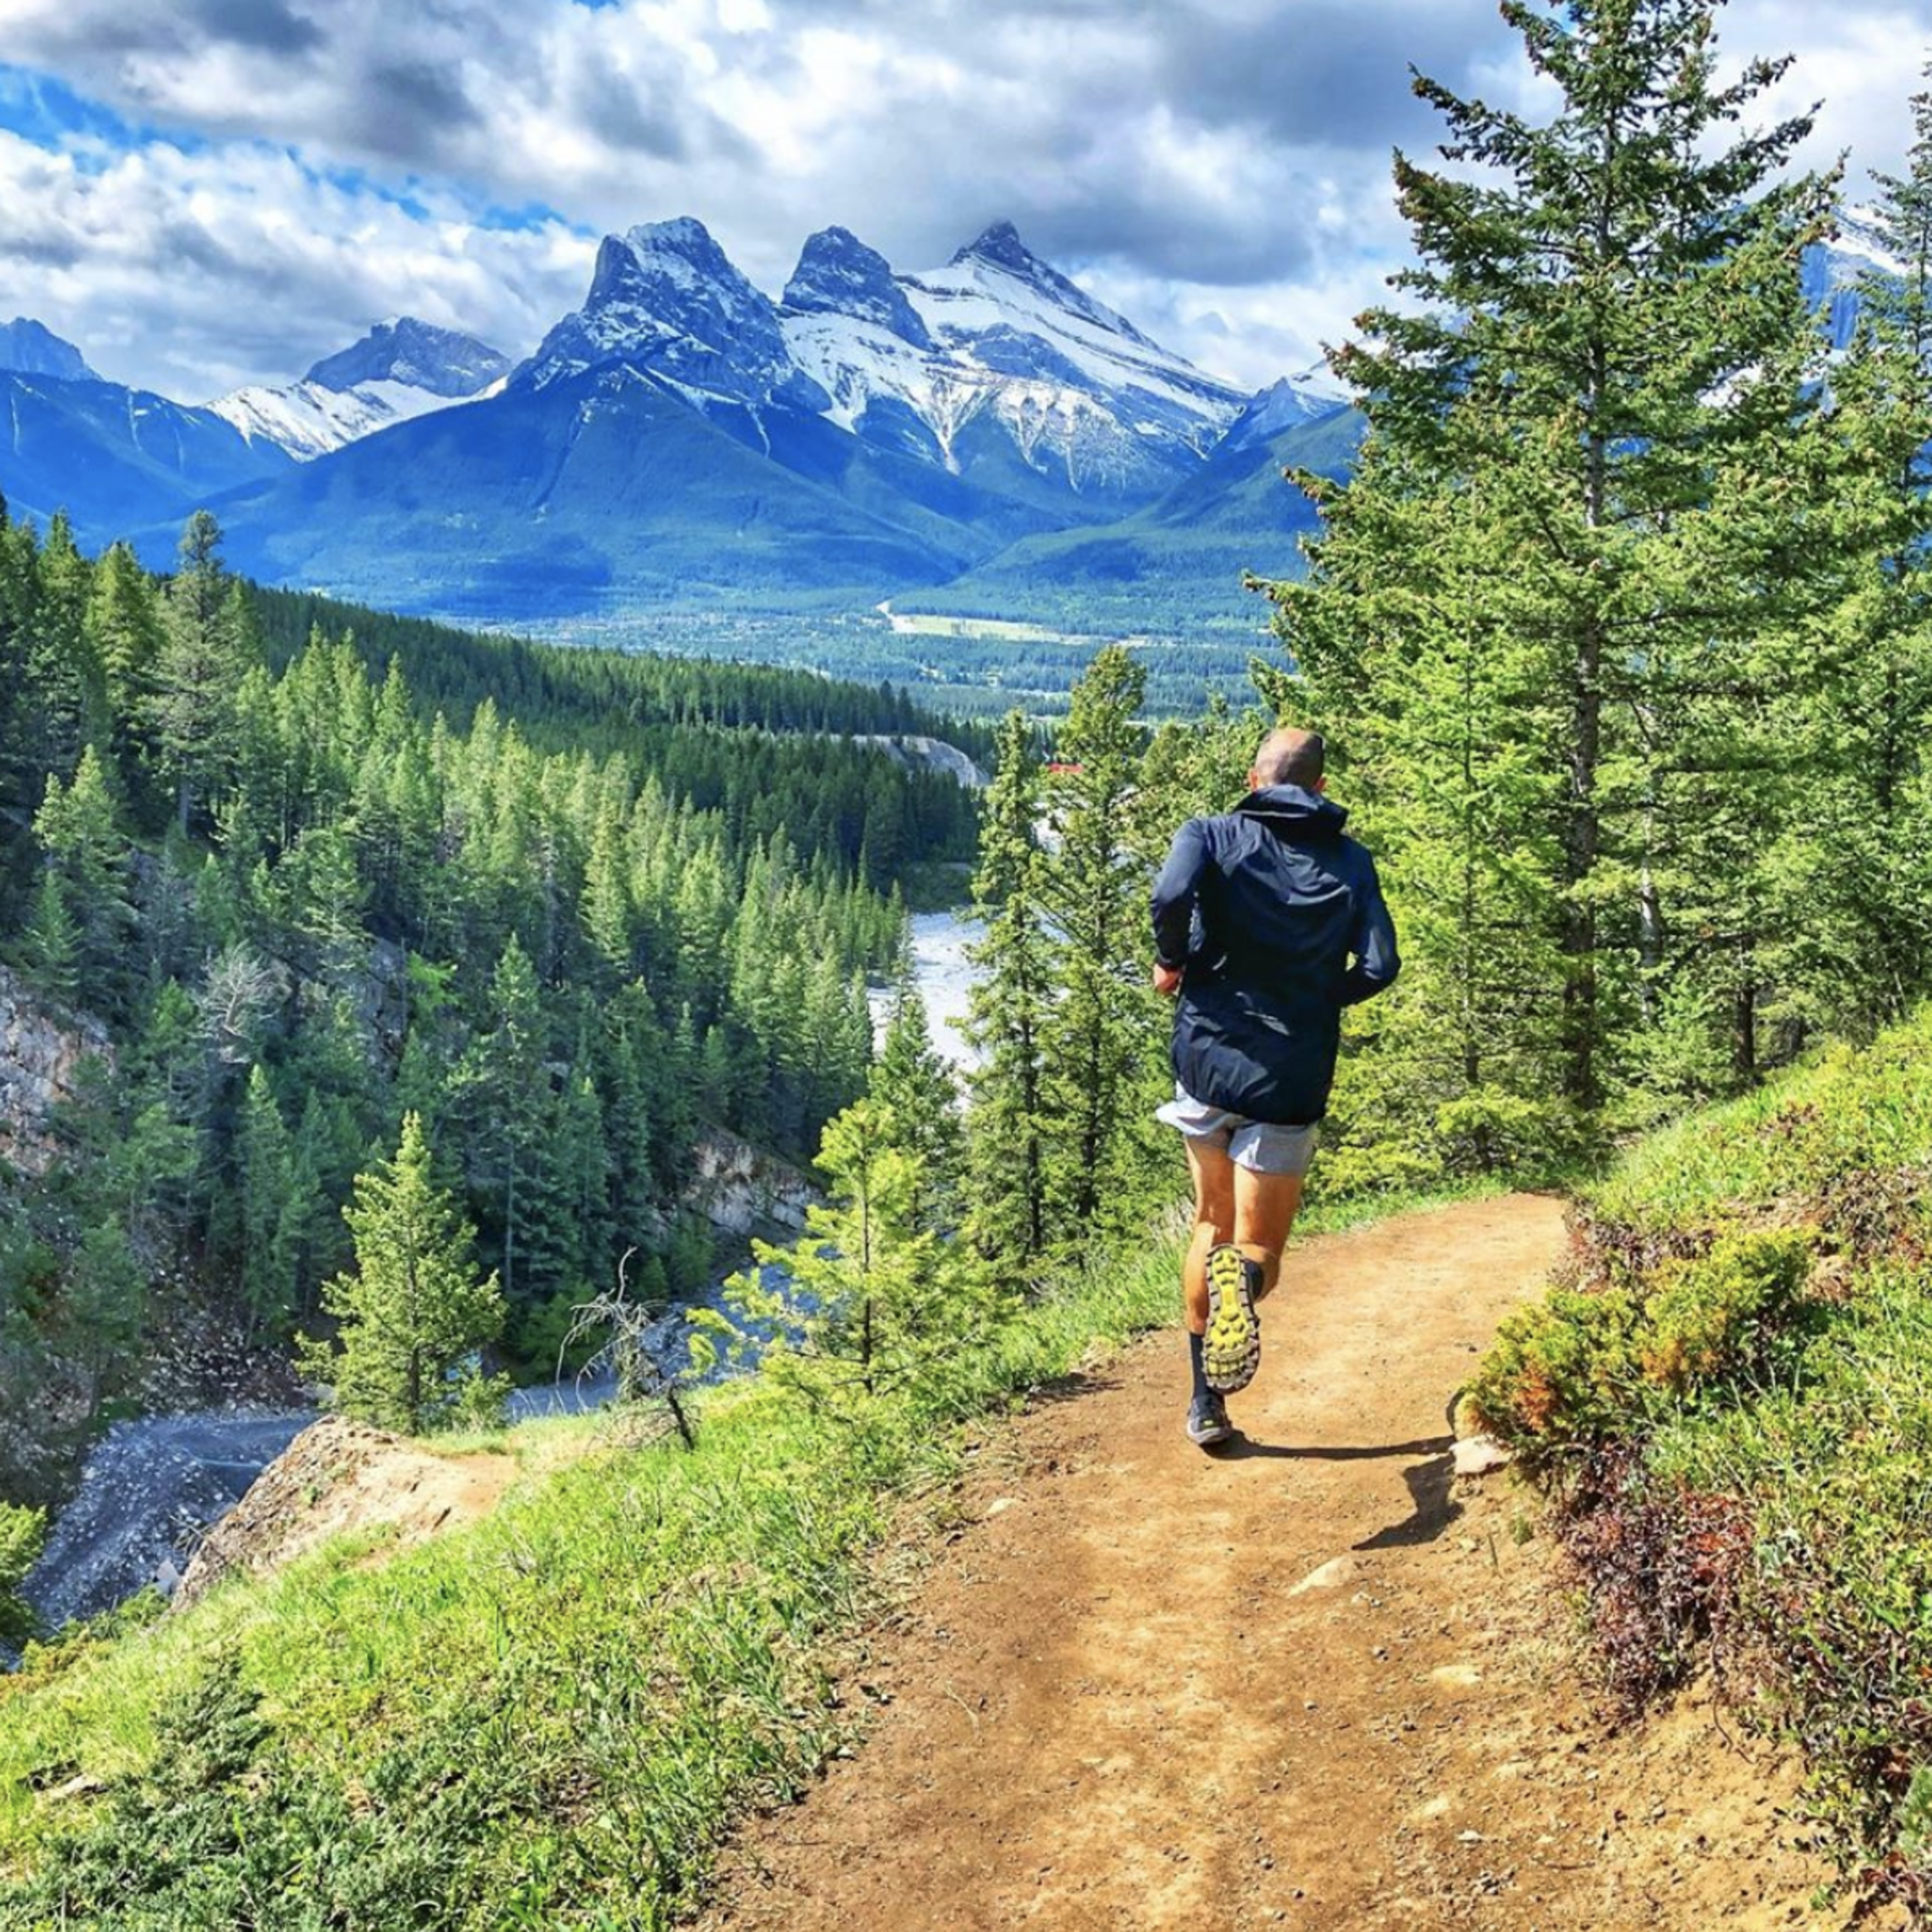 61. Jacob Puzey: Running, coaching, and home-schooling